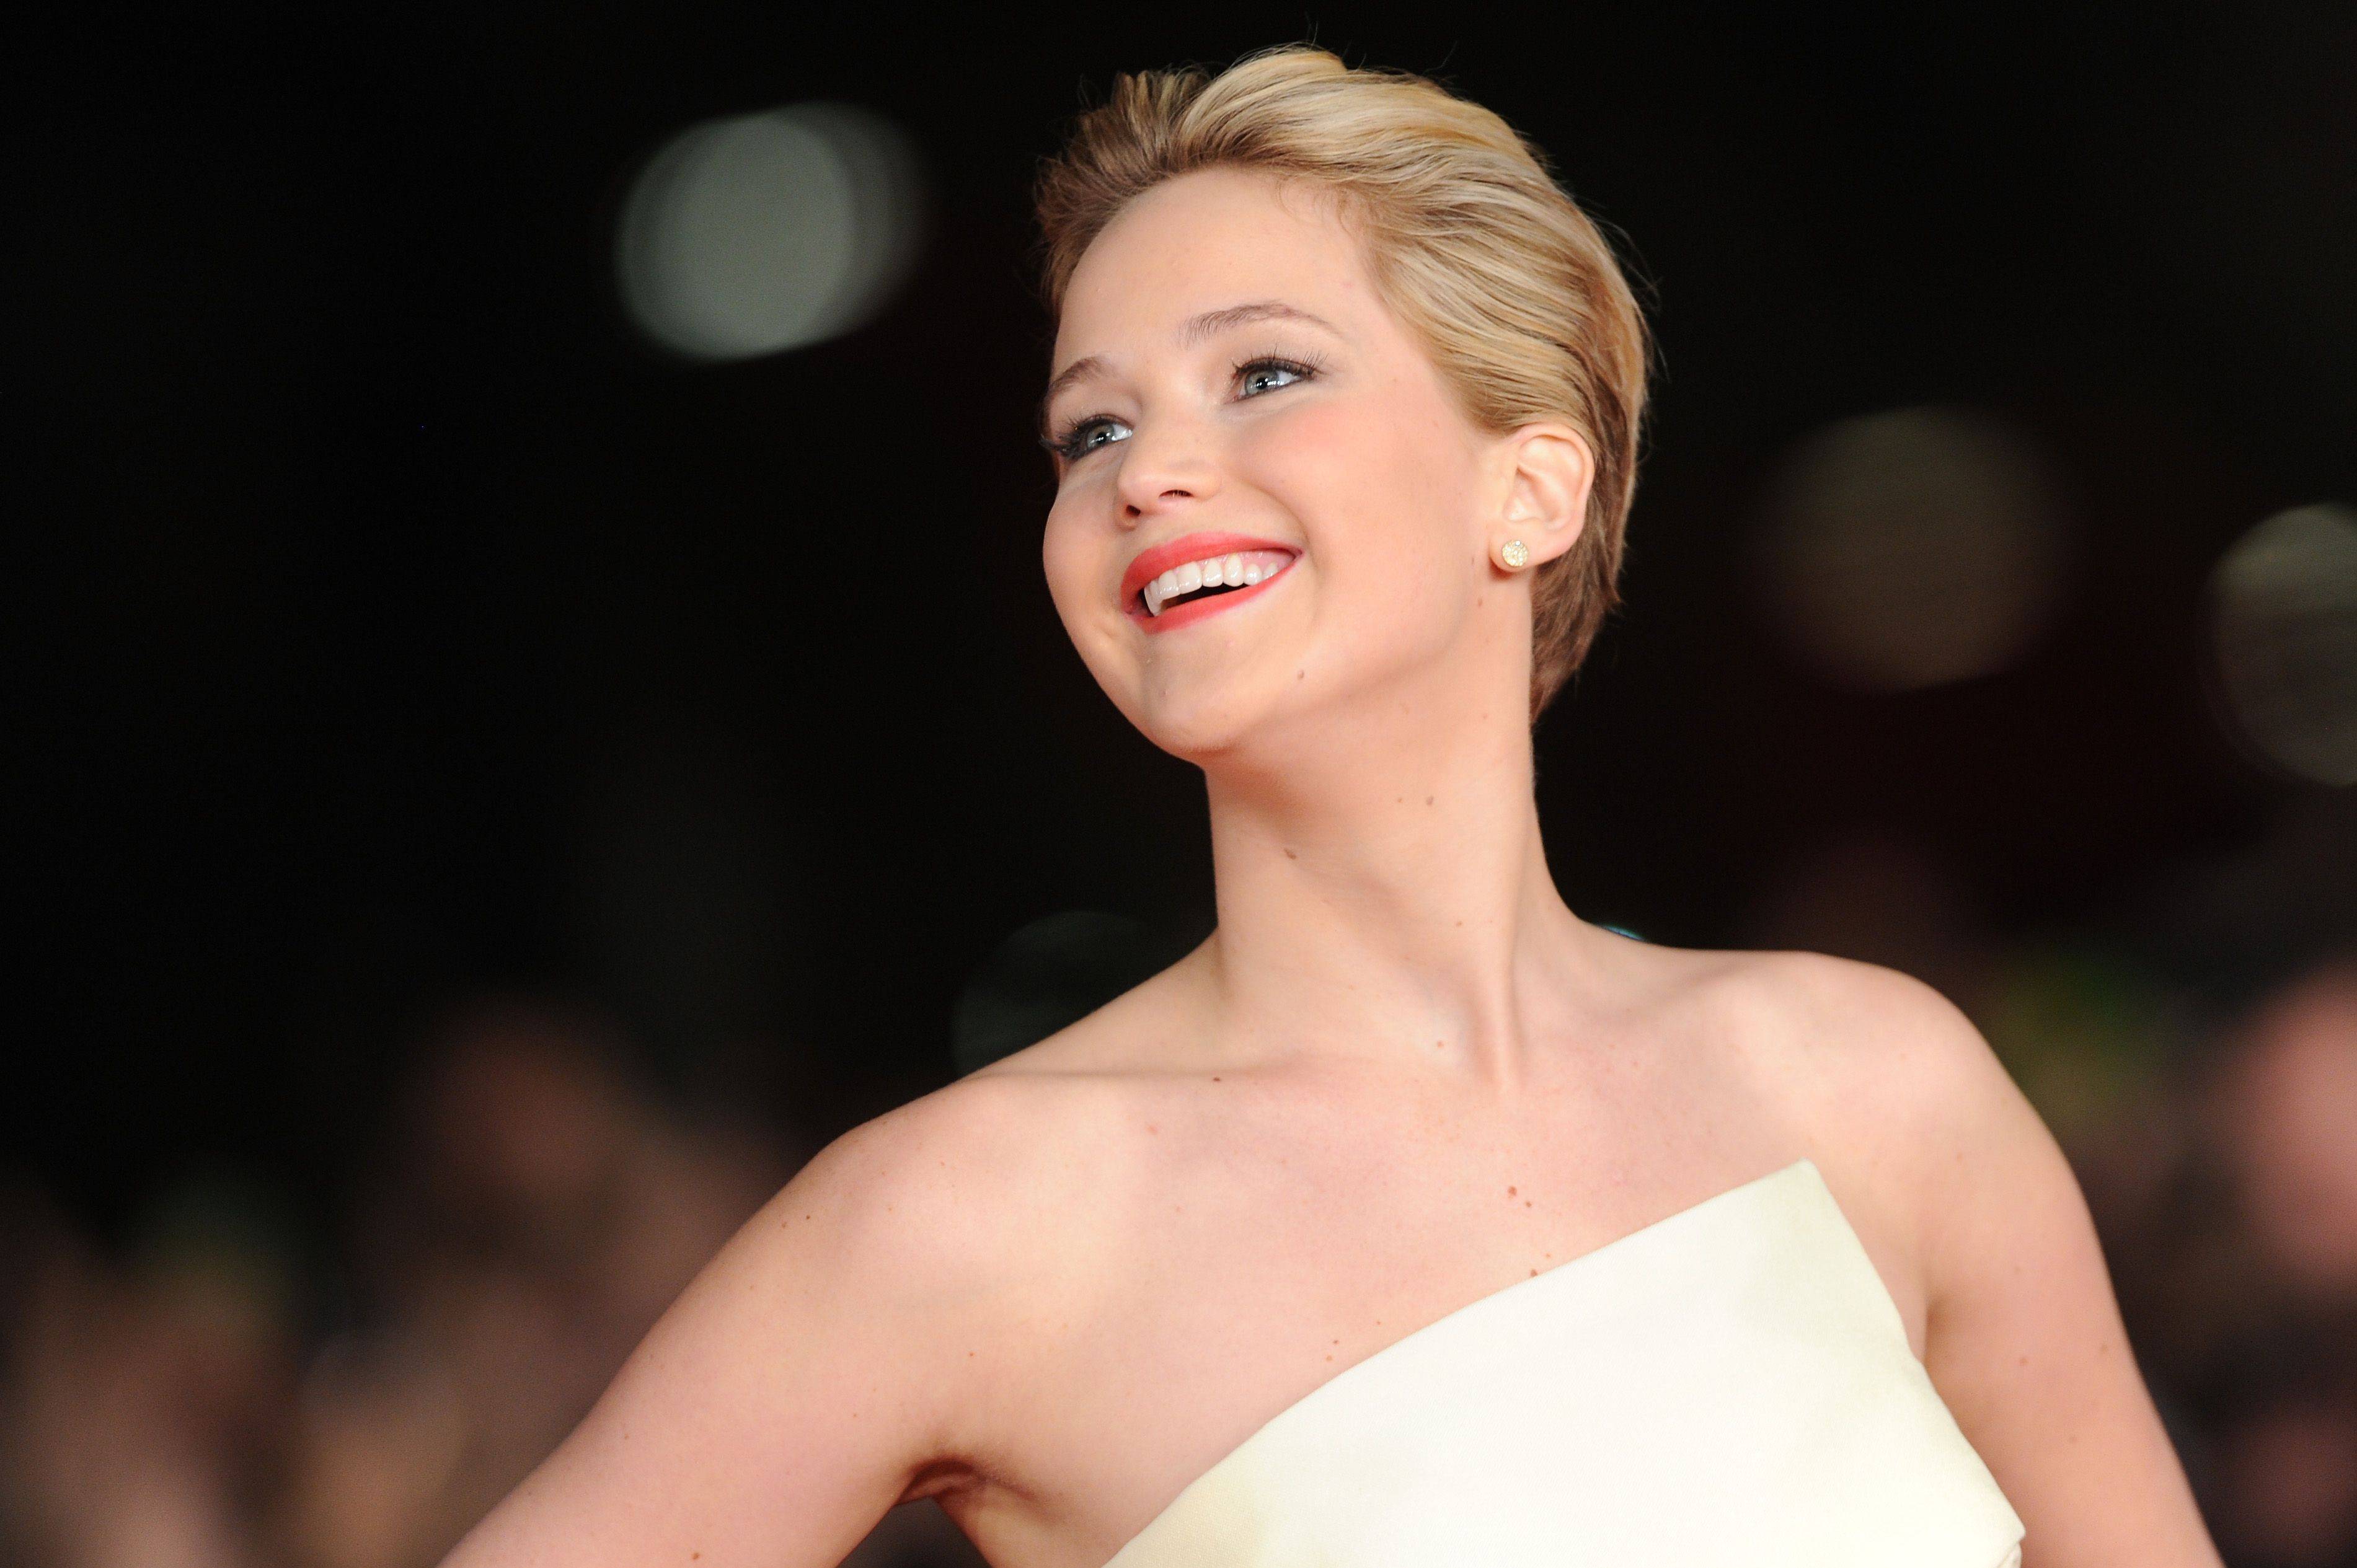 All The Details on Jennifer Lawrence's Wedding to Cooke Maroney